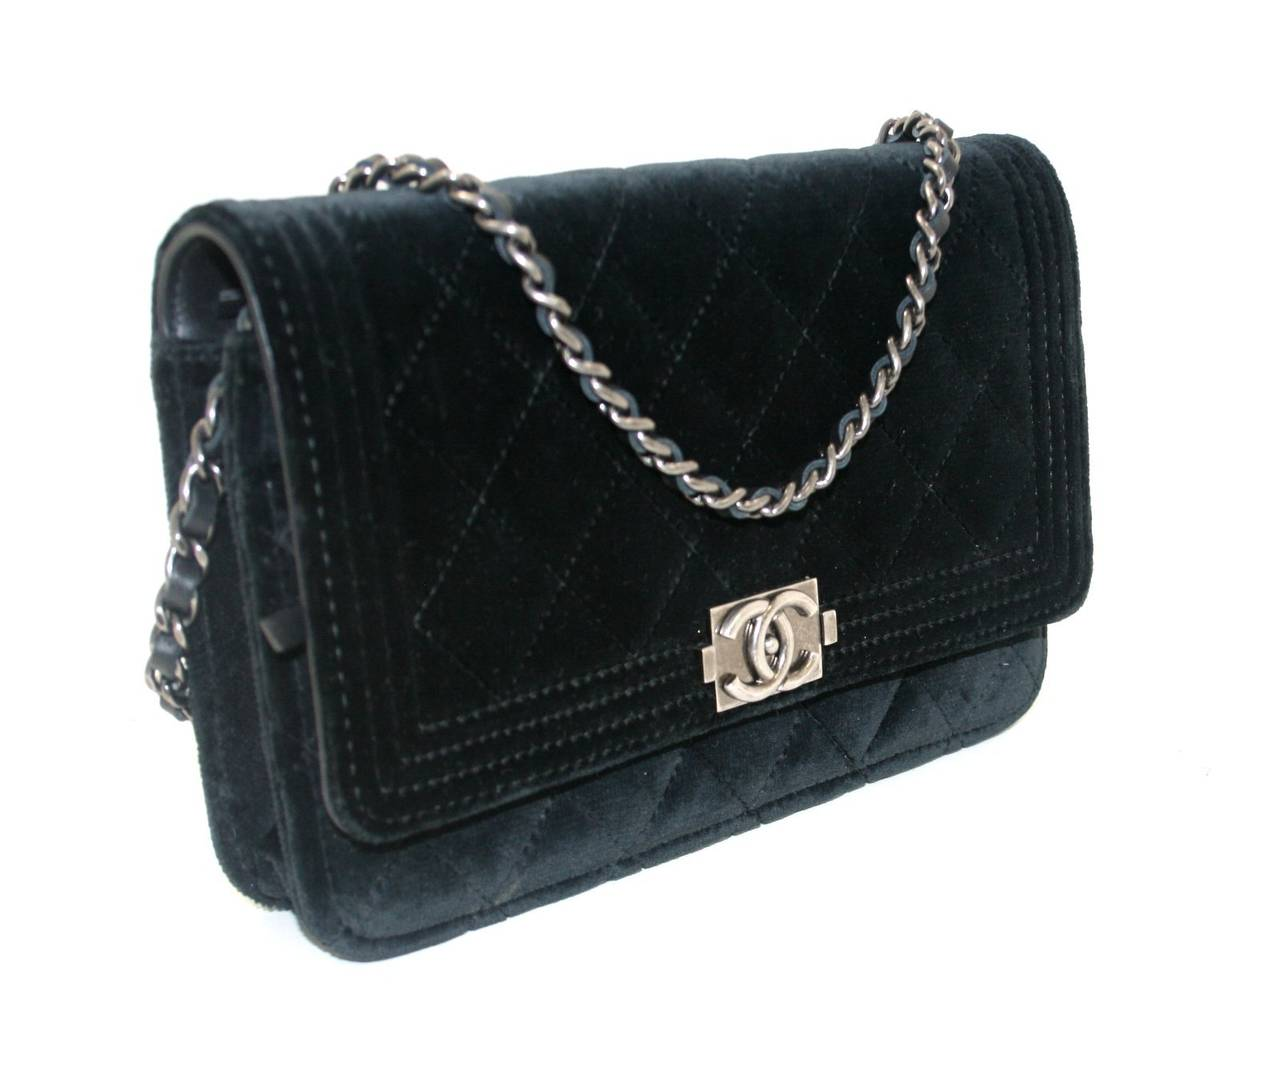 Chanel Black Velvet WOC Boy Bag Wallet on a Chain Ltd. Ed. 3